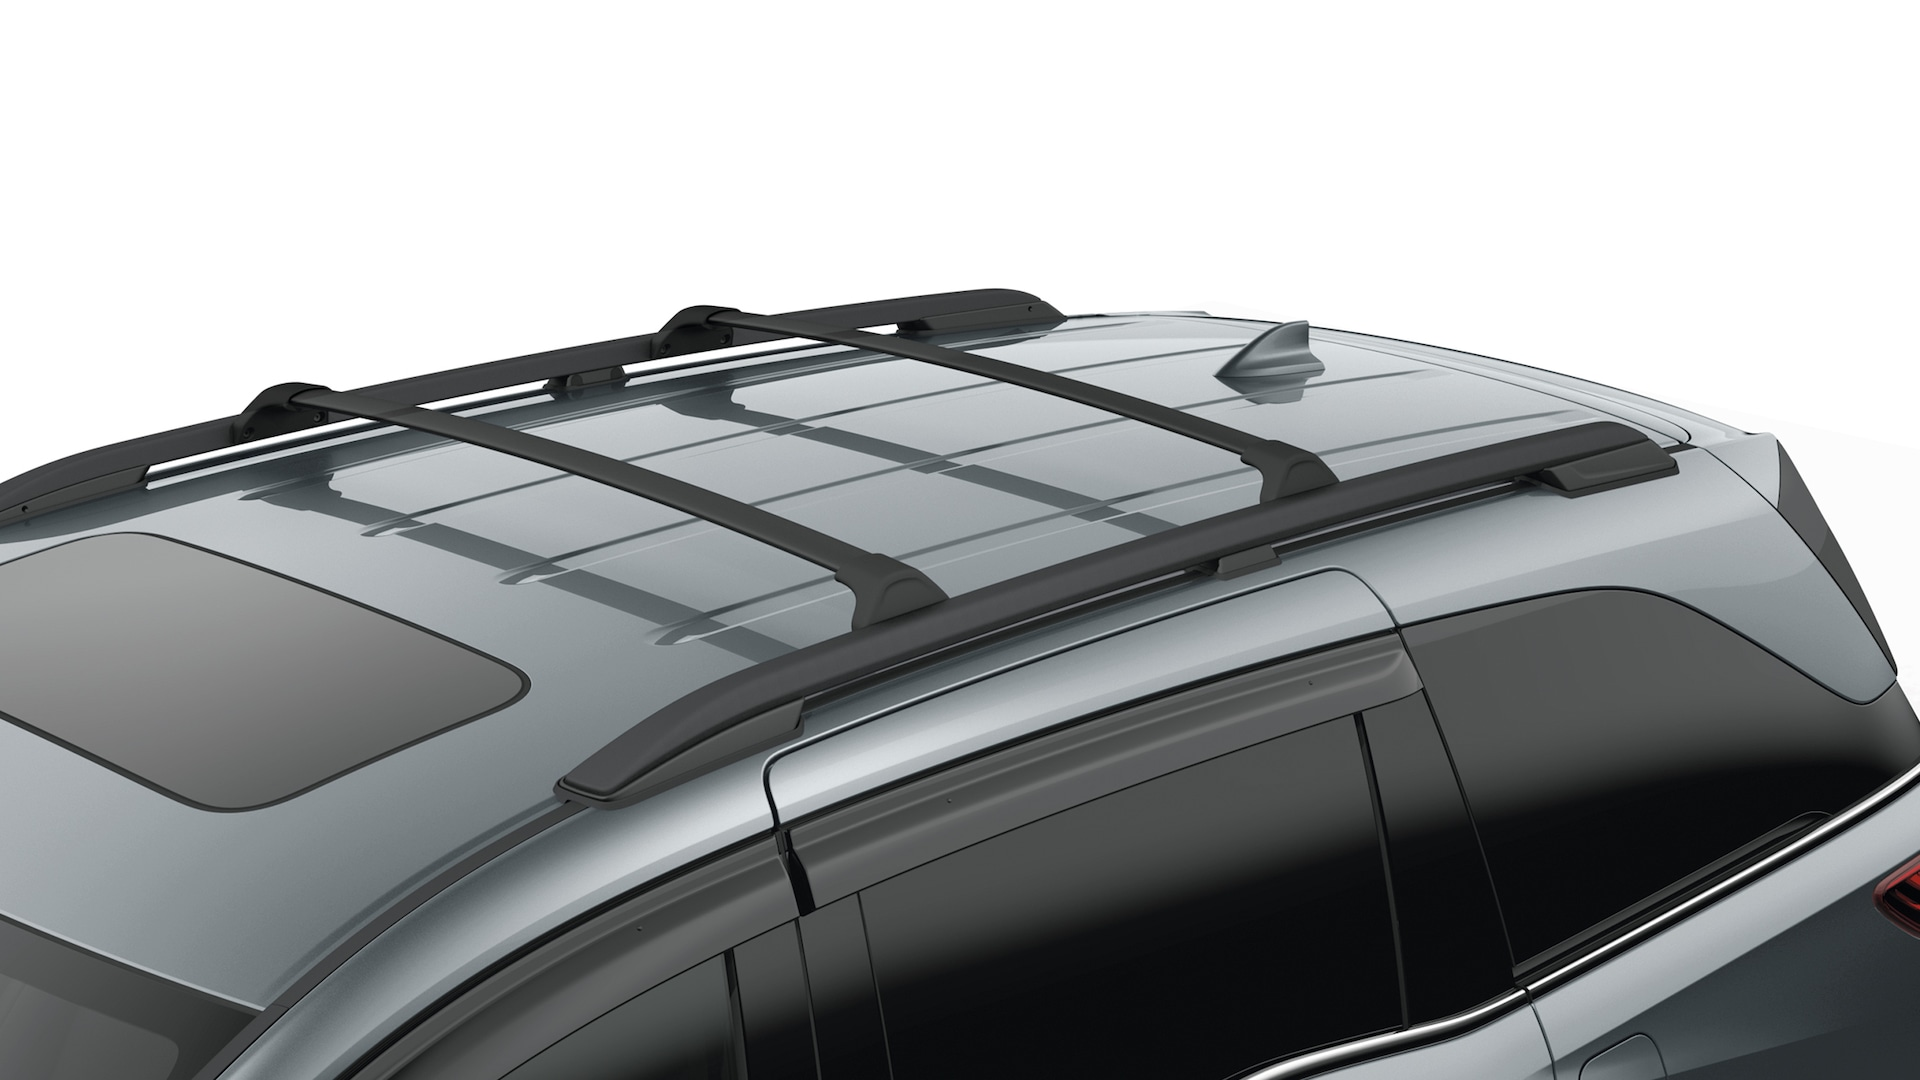 Detail of 2020 Honda Odyssey accessory roof rails and crossbars.